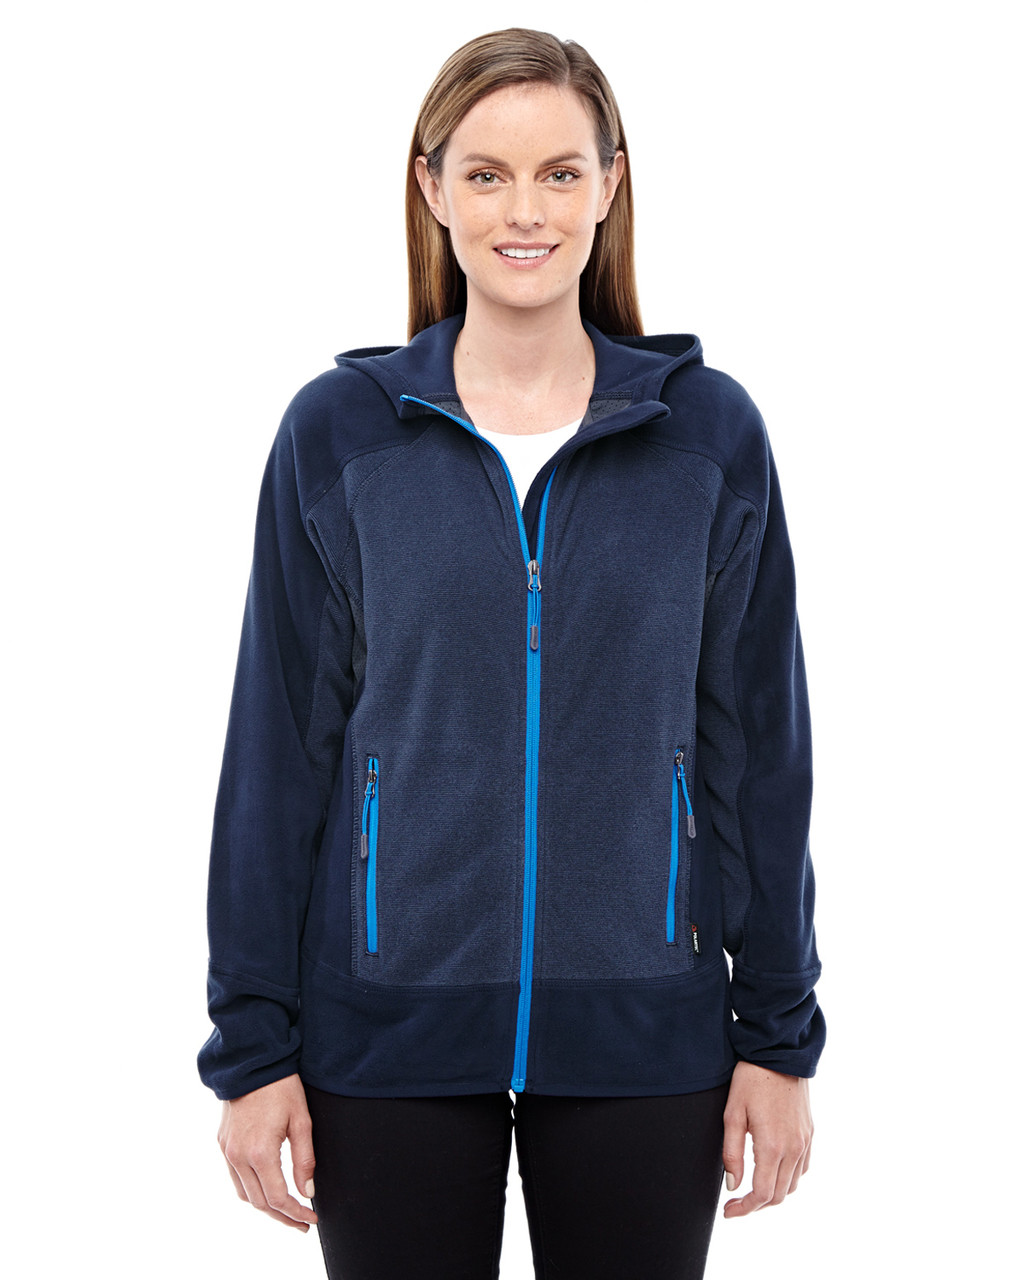 Night/Olympic Blue 78810 North End Sport Red Vortex Polartec Active Fleece Jacket